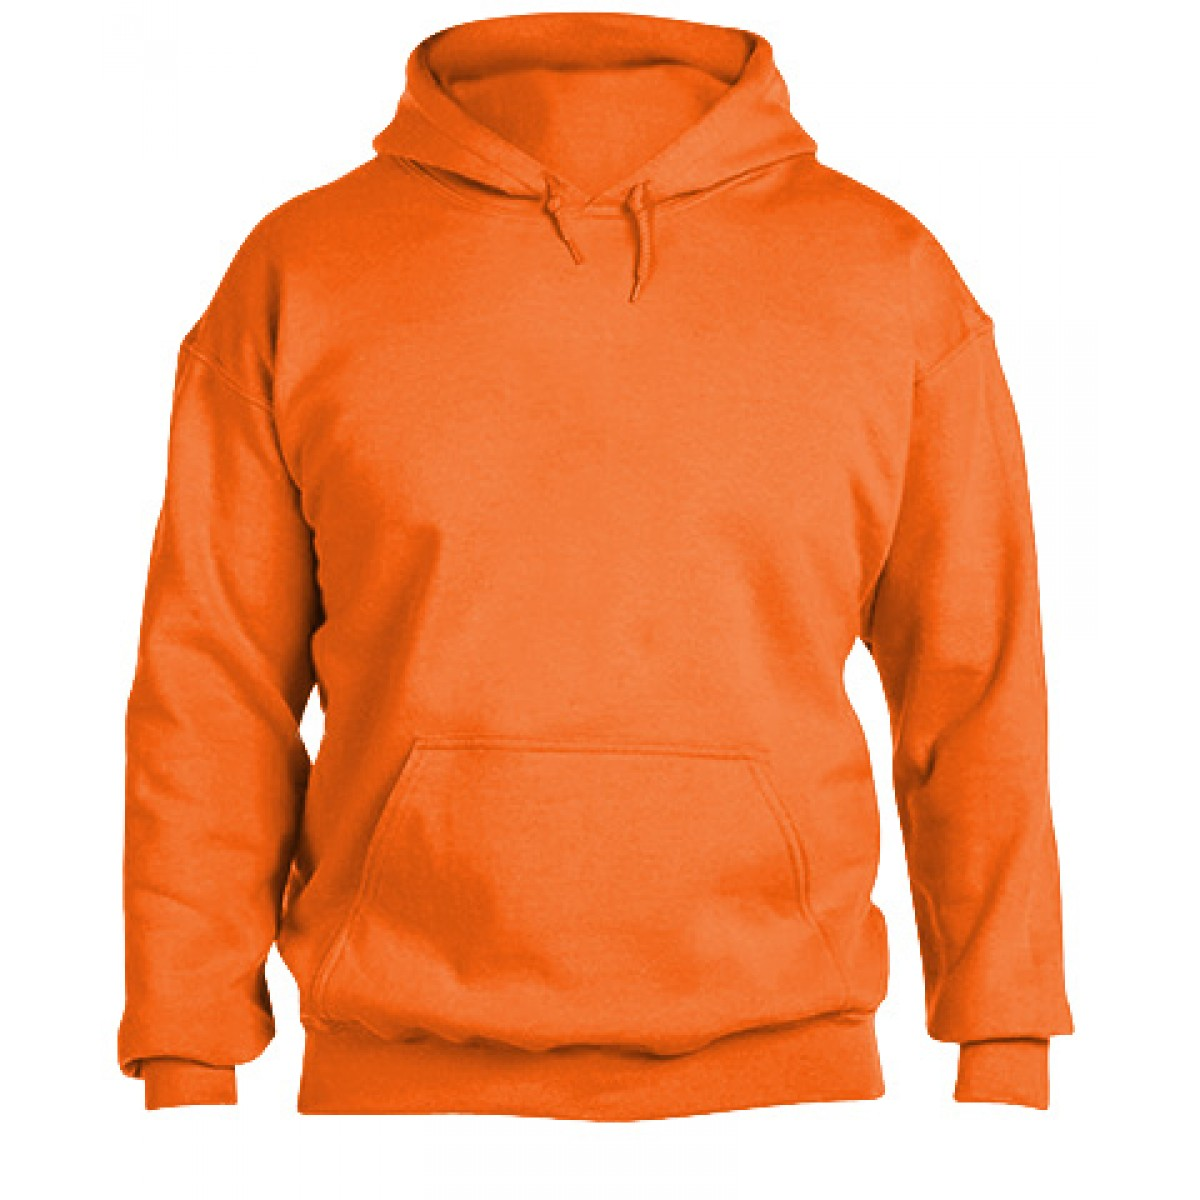 Hooded Sweatshirt 50/50 Heavy Blend-Safety Orange-XL